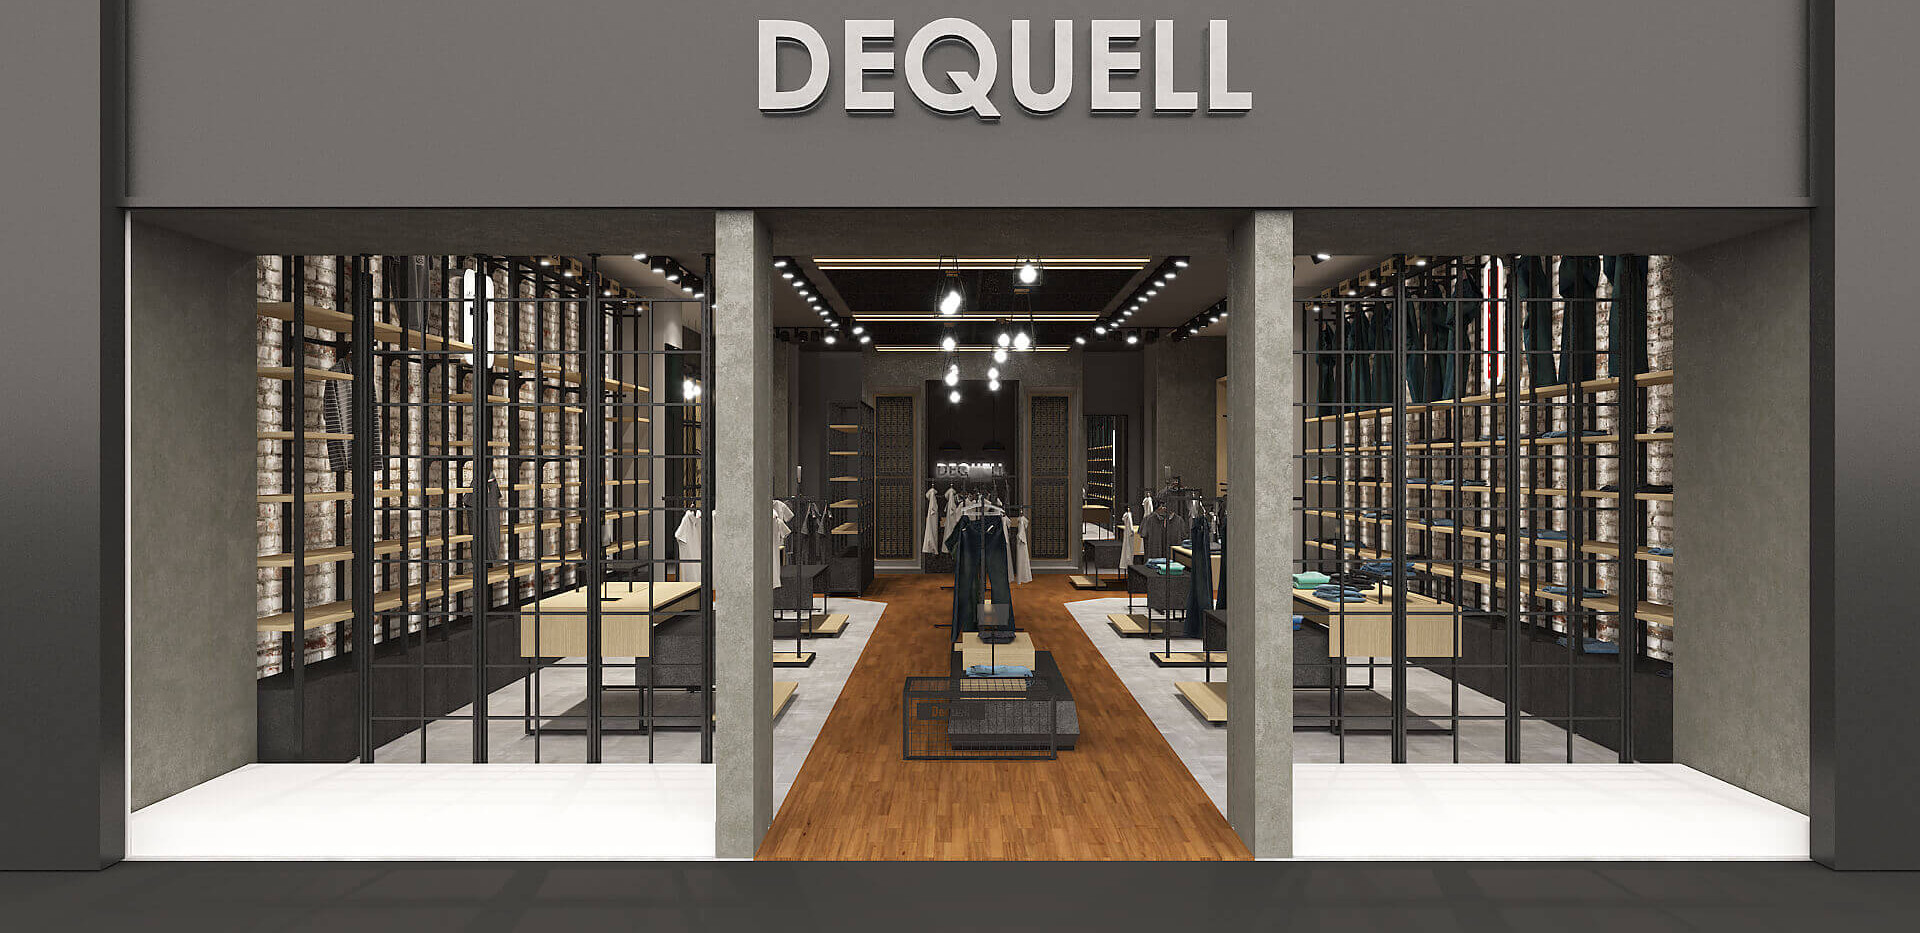 Dequell - Denim Store Shop Design-1.jpg